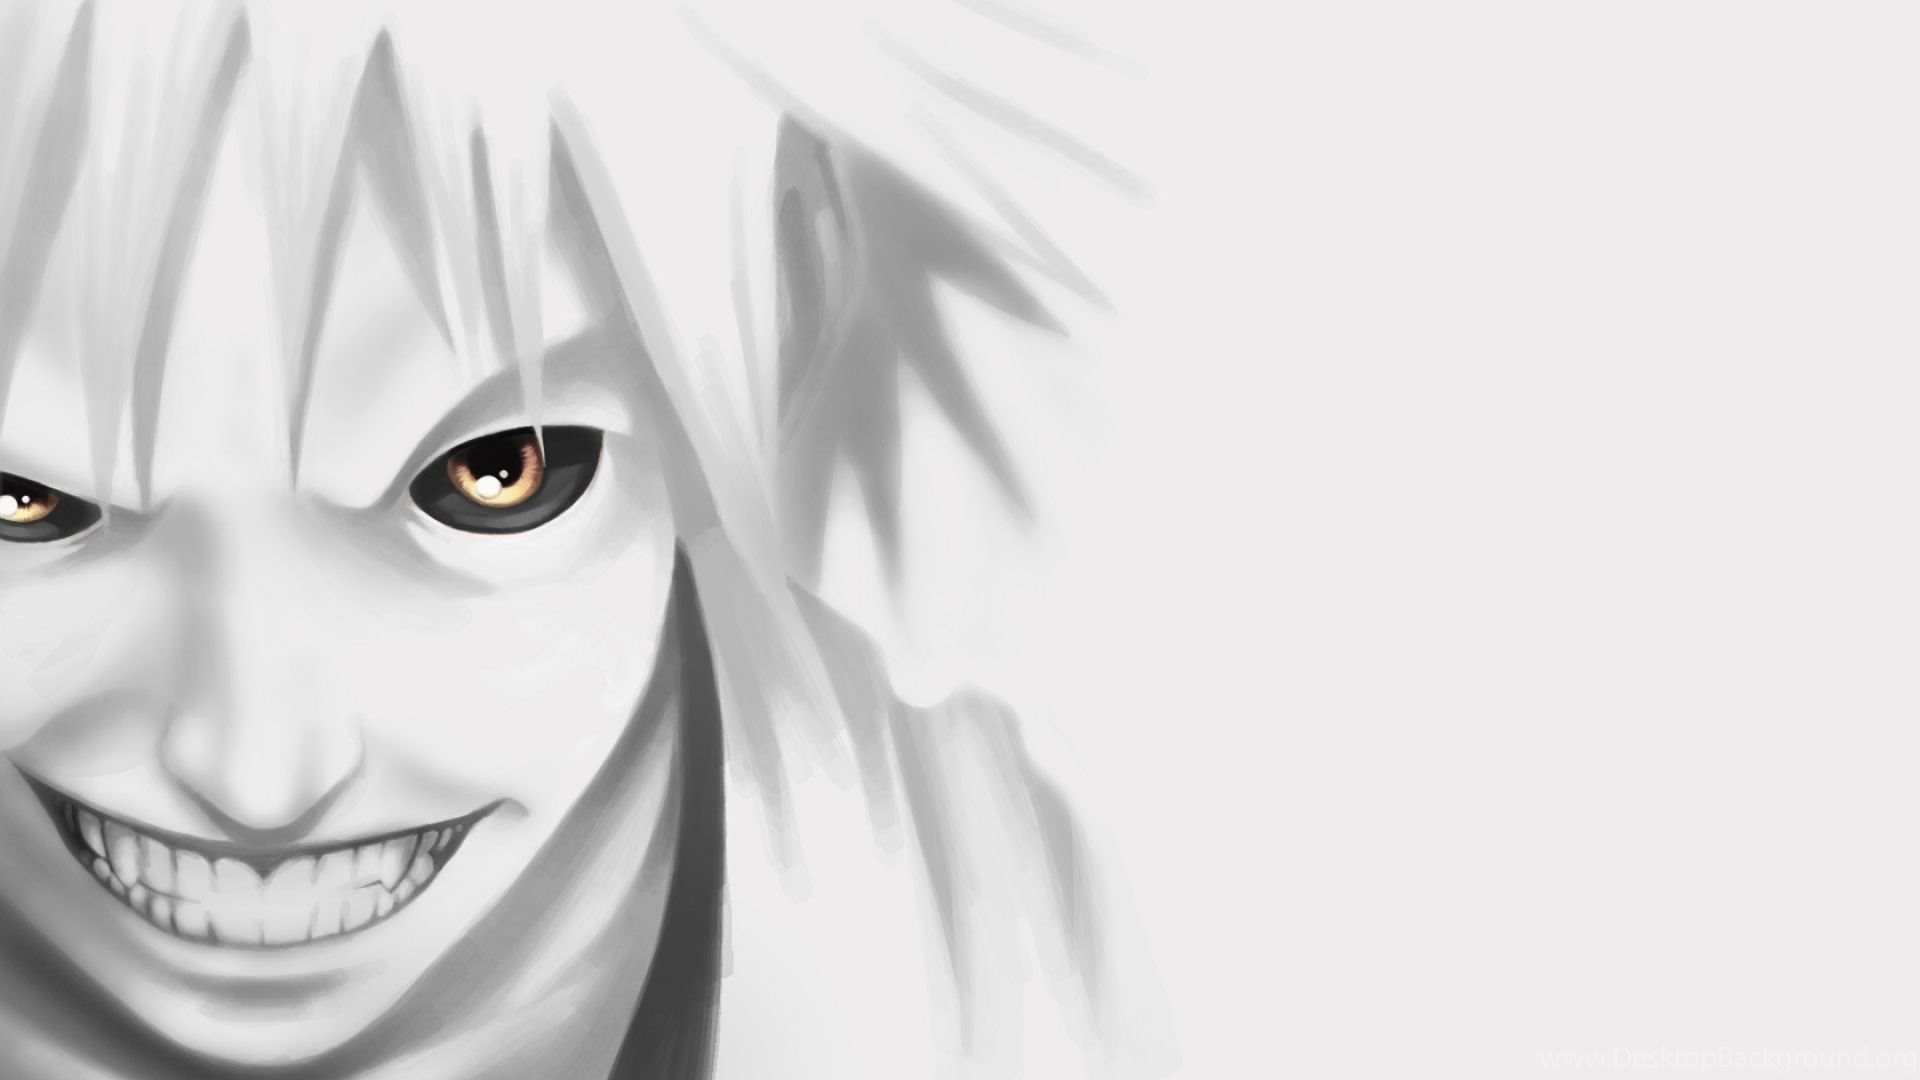 Wallpaper Fangs Anime Boy Teeth Anger Evil Wallpapers Desktop Background